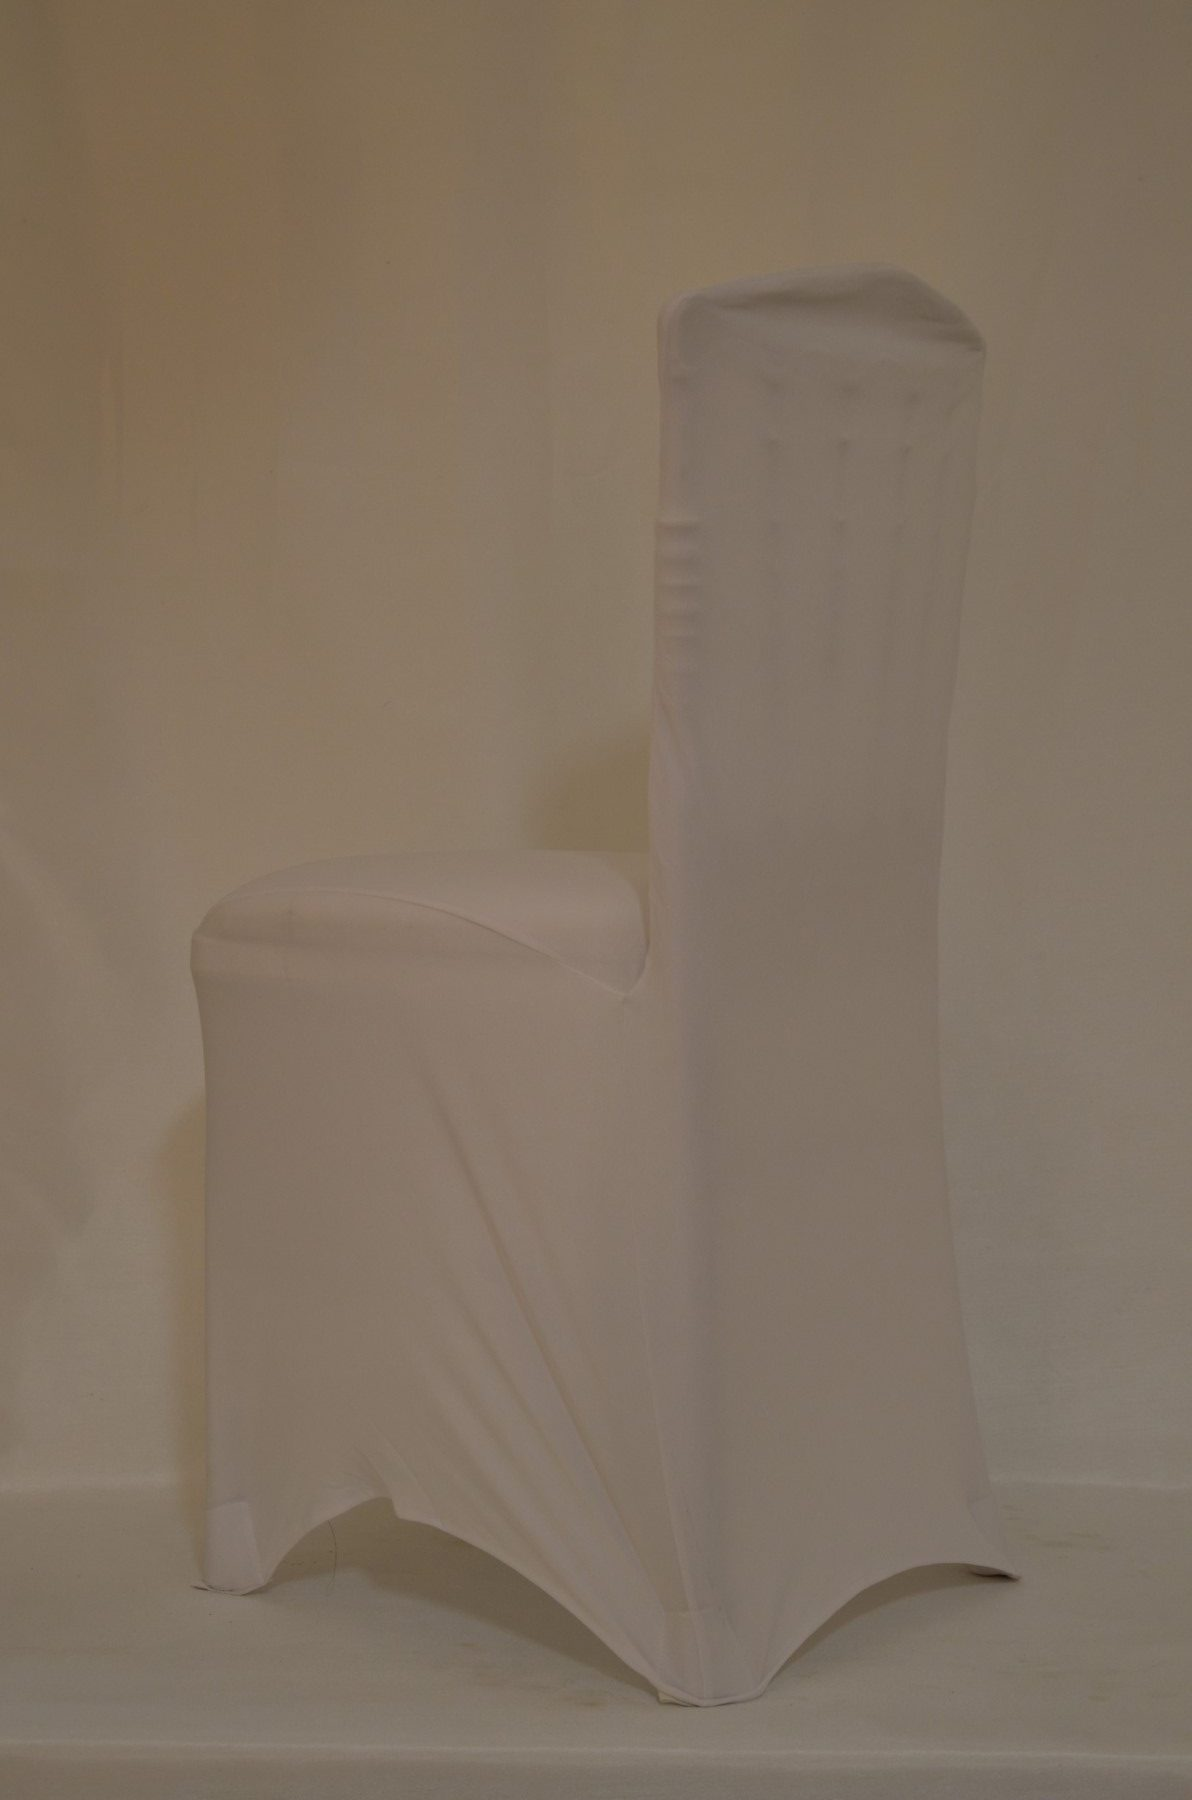 stretch chair covers wedding rental clear lucite chairs spandex cover white eventful decor rentals